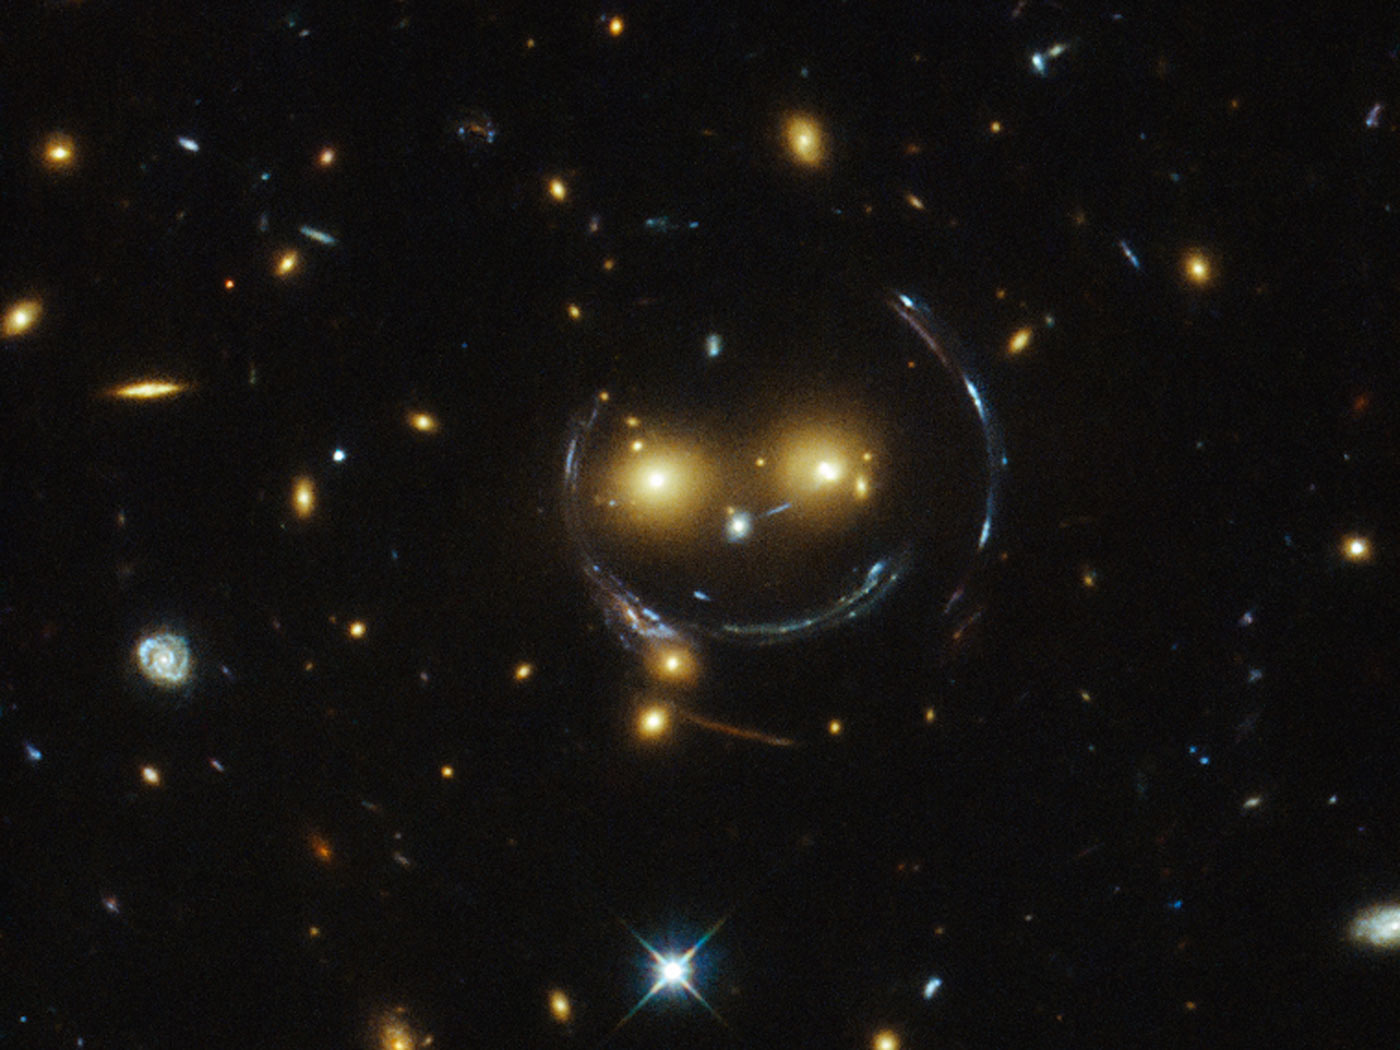 gravitational lensing and a galaxy cluster